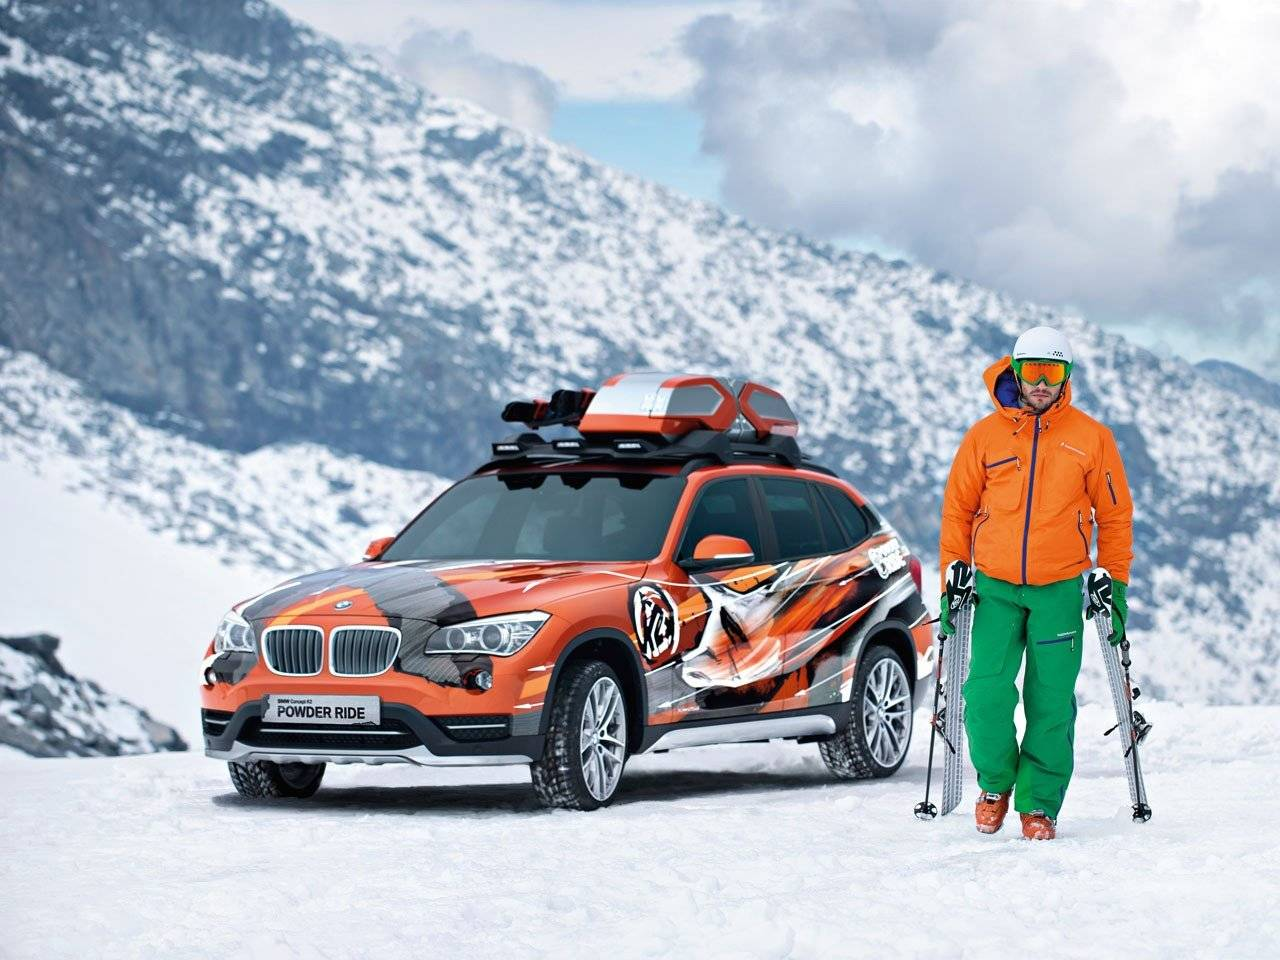 bmw zoekt met x1 de sneeuw op autonieuws. Black Bedroom Furniture Sets. Home Design Ideas